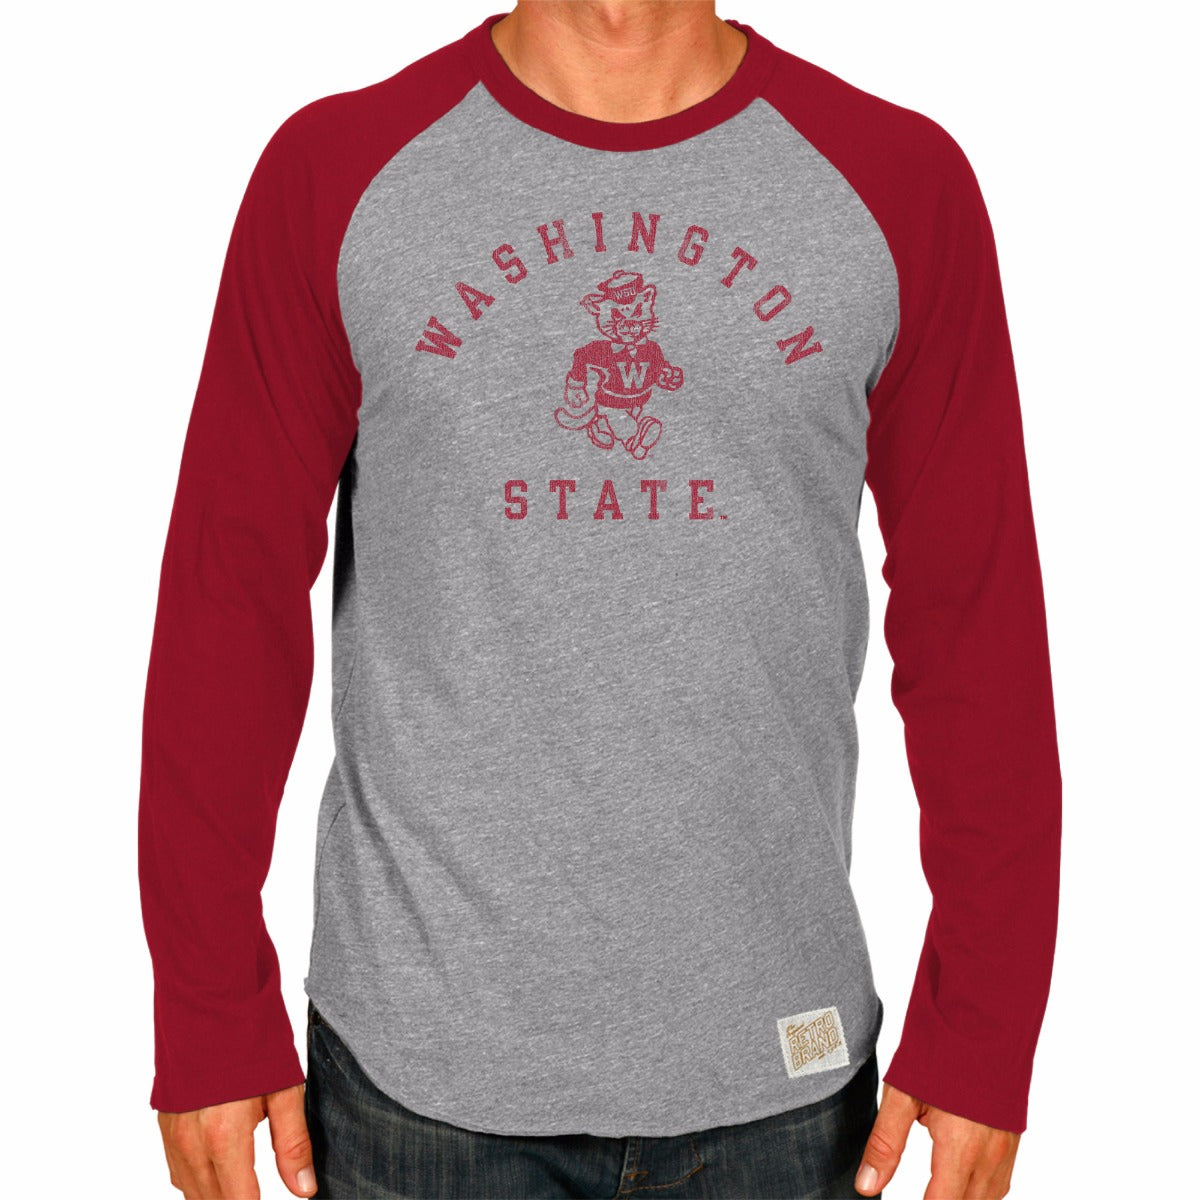 Washington State Cougars Men's Long Sleeve Raglan Baseball Tee